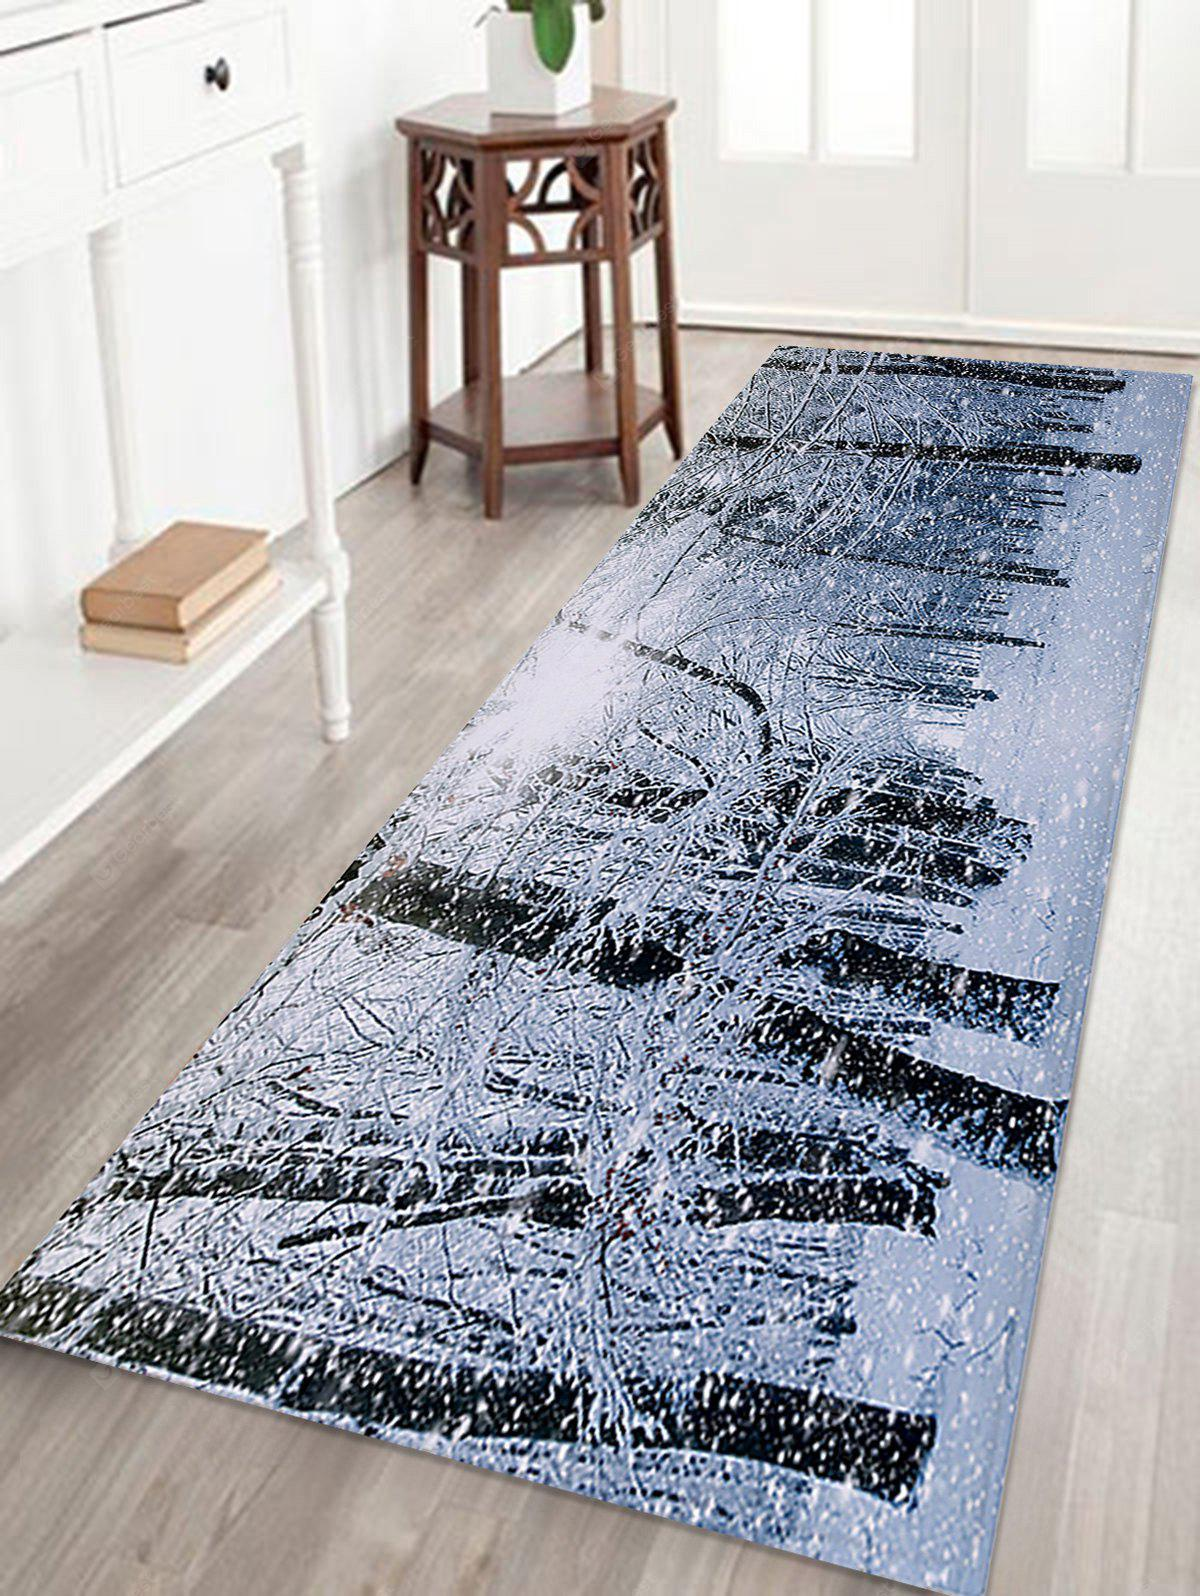 Christmas Snow Forest Printed Skidproof Coral Fleece Bath Rug, COLORMIX, Home & Garden, Home Textile, Carpets & Rugs